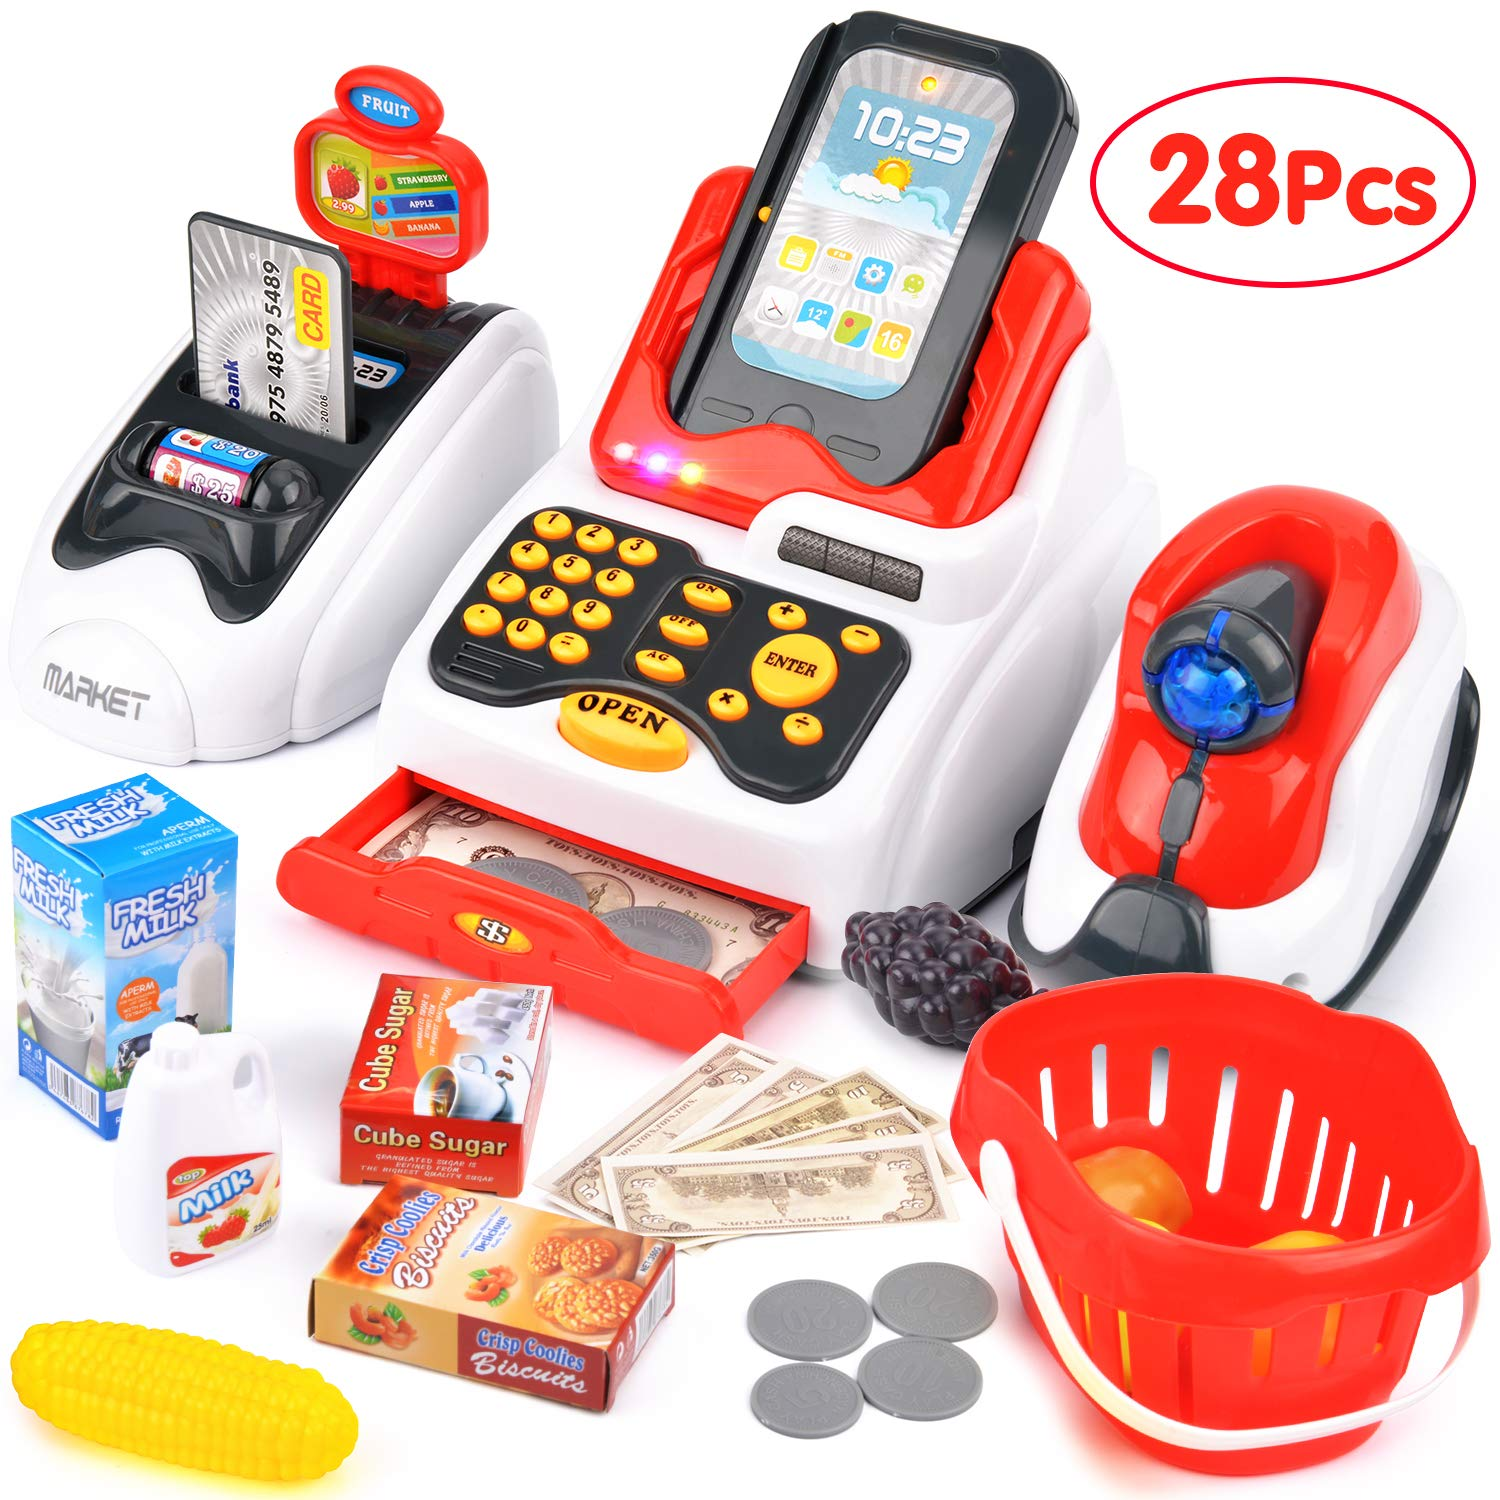 Victostar Toy Cash Register for Kids with Checkout Scanner,Fruit Card Reader, Credit Card Machine, Play Money and Food Shopping Play Set by Victostar